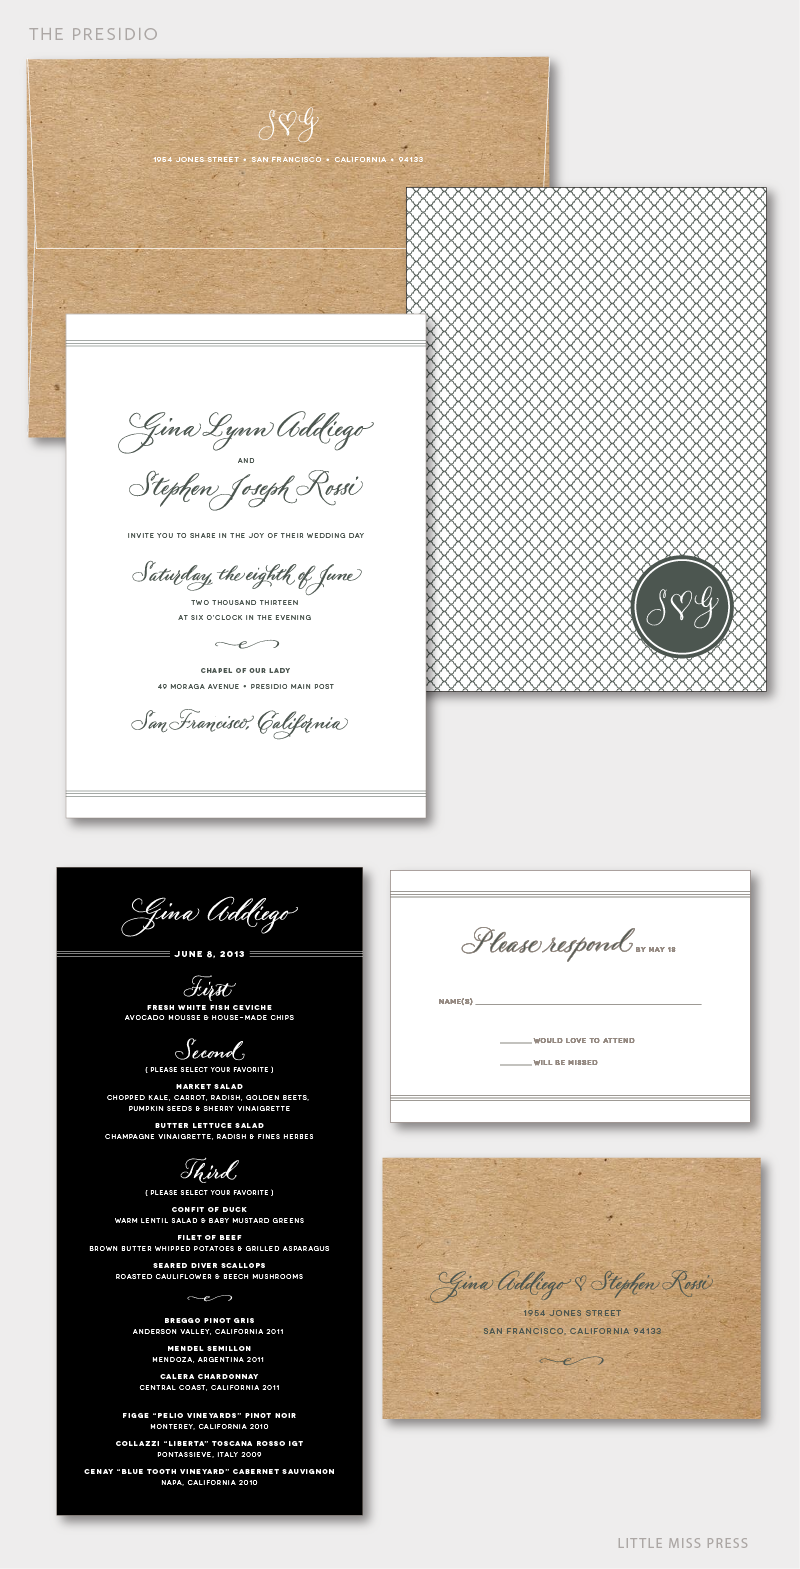 presidio_wedding_invitation